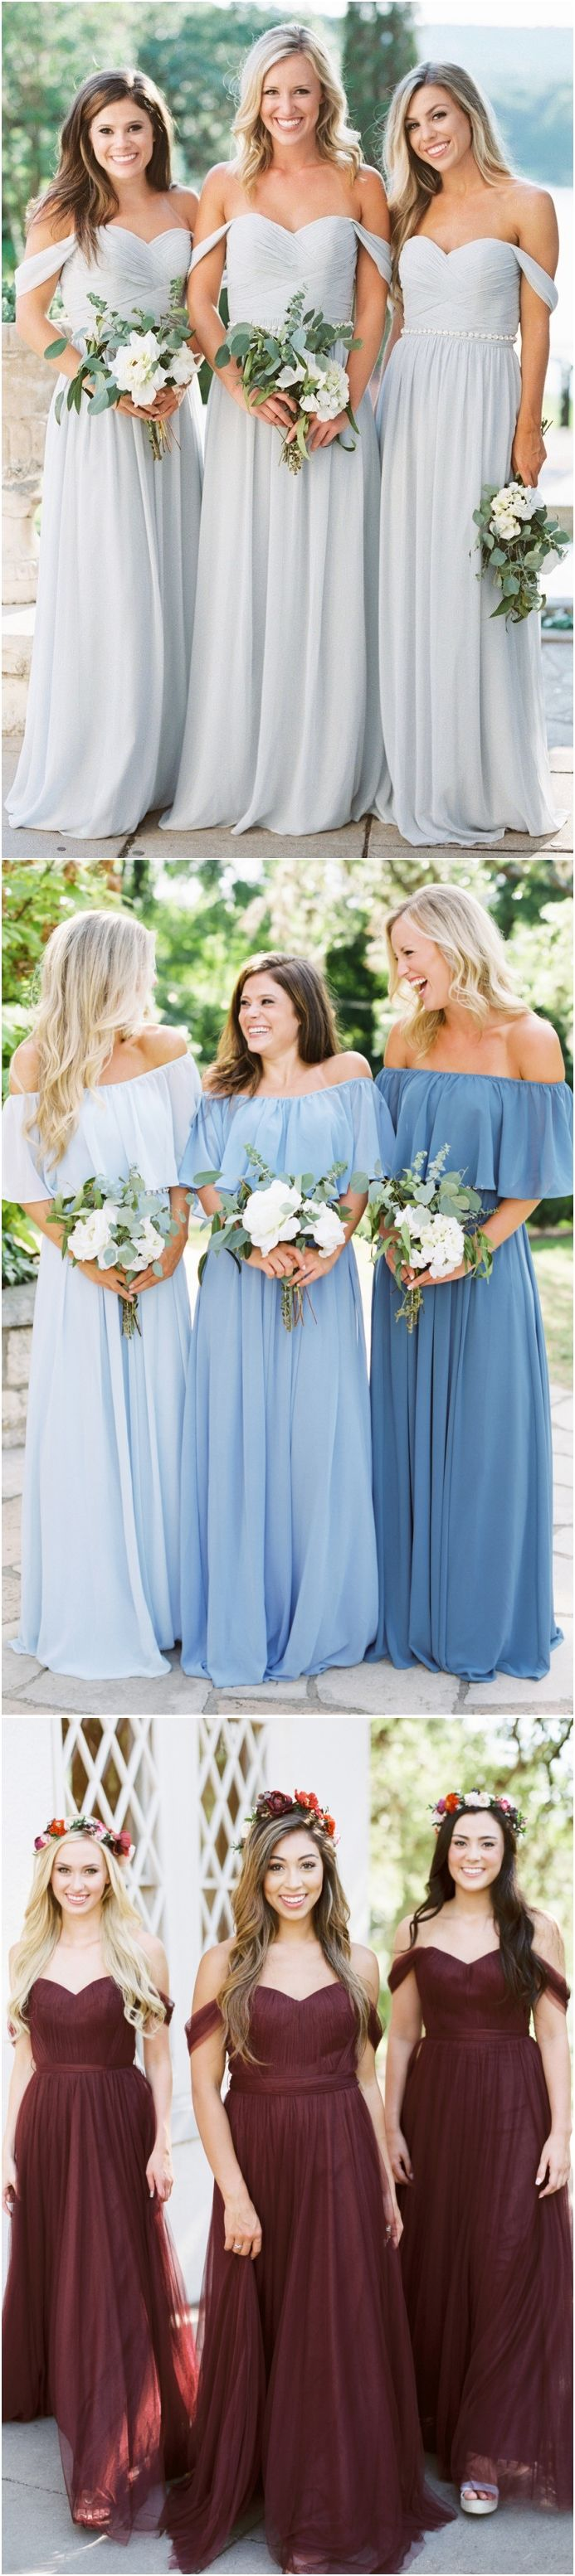 Top 6 Bridesmaid Dress Trends for 2018